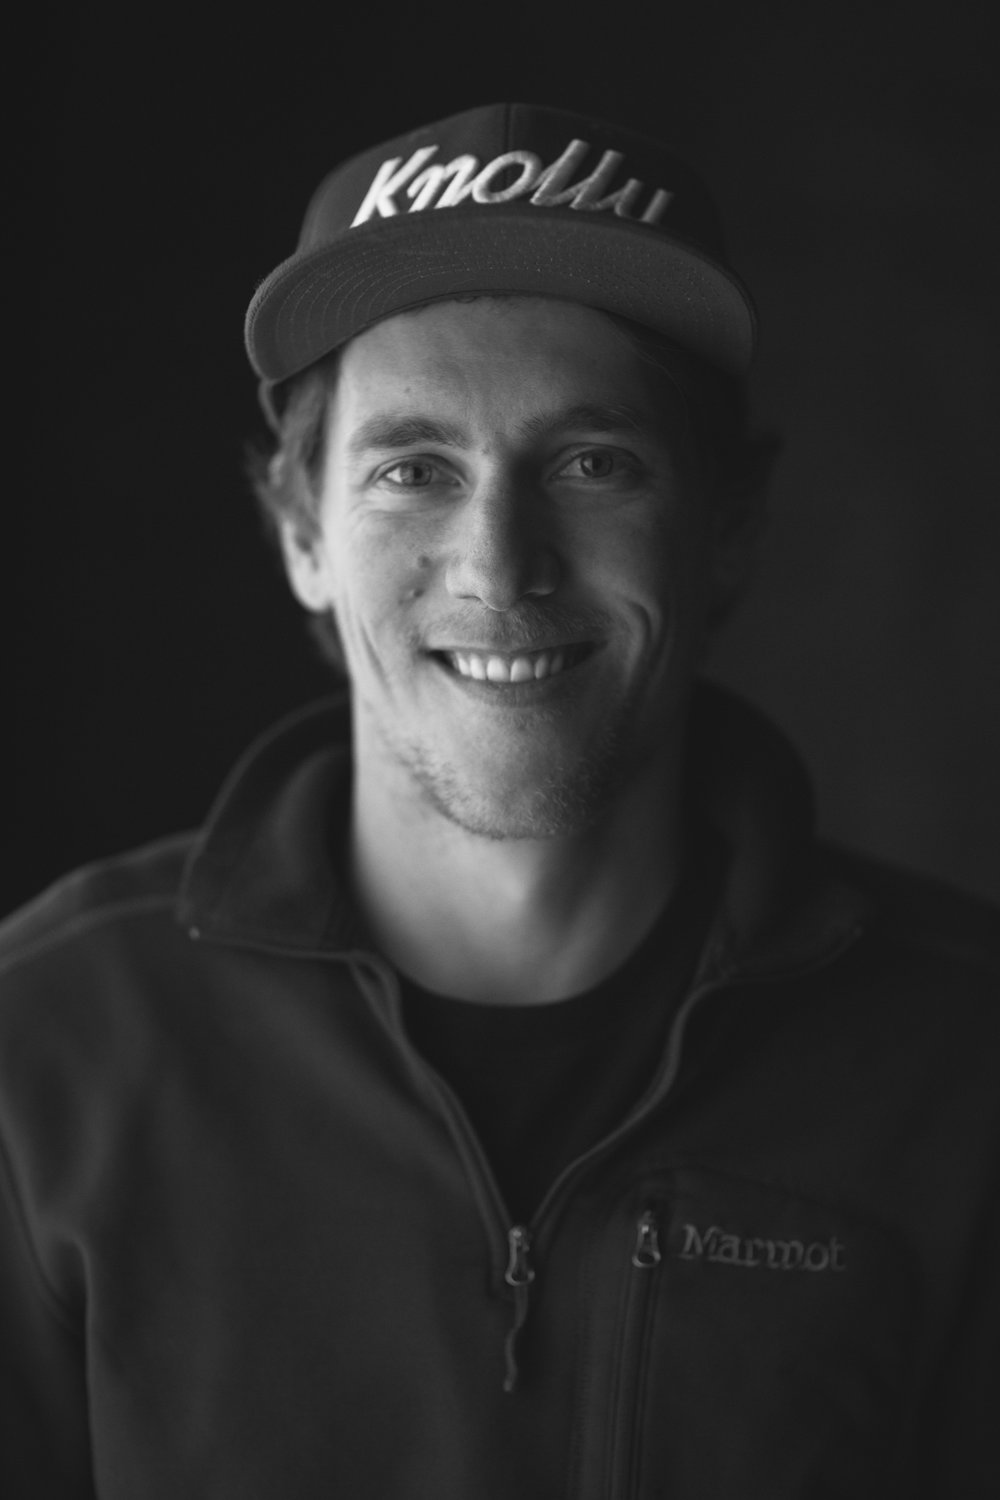 Brian Chapel - Growing up in Colorado, Brian learned to love the outdoors at an early age.  It was after he had developed this love affair with nature that he first picked up a camera and began to document the adventures he embarked on.  With years of experience in the mountain bike industry and a passion for all things outdoors, he has developed an eye for capturing the pure and authentic moments going on around him.Brian attended Western State Colorado University where he studied Business Administration and Marketing.  His education has given him invaluable insight into what consumers and clients are looking for in the content being created.  Whether it be capturing beautiful wedding photography, shooting an event, or working on a commercial assignment, Brian is passionate about capturing beautiful, unique, authentic moments. Commercial Clients:Bell Helmets / Red Bull / Dragonfli Media / Scott Enduro Cup / Fanatik Bike Co / Knolly Bikes / High Above Packs / Canfield Brothers / Misterlost Bike Shop / Cascade Racing Designs / Intrinsic Flow / Evergreen MassageEditorial:Bike Magazine / Mount Baker Experience